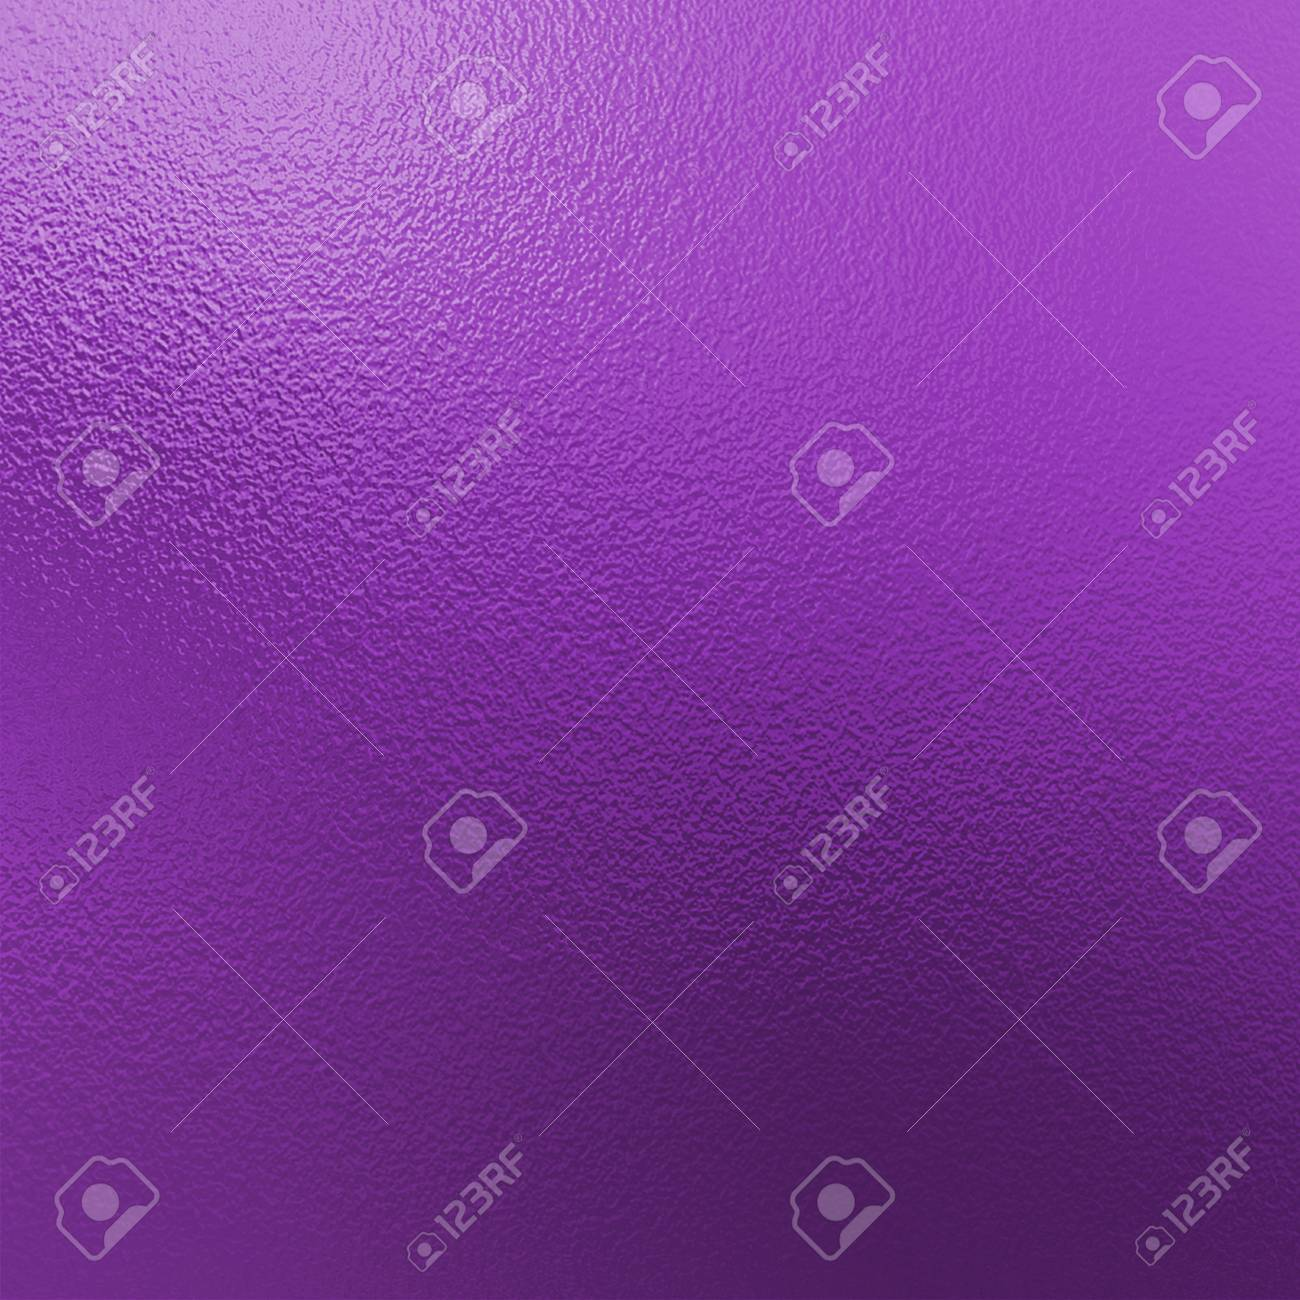 Free Purple And Gold Backgrounds